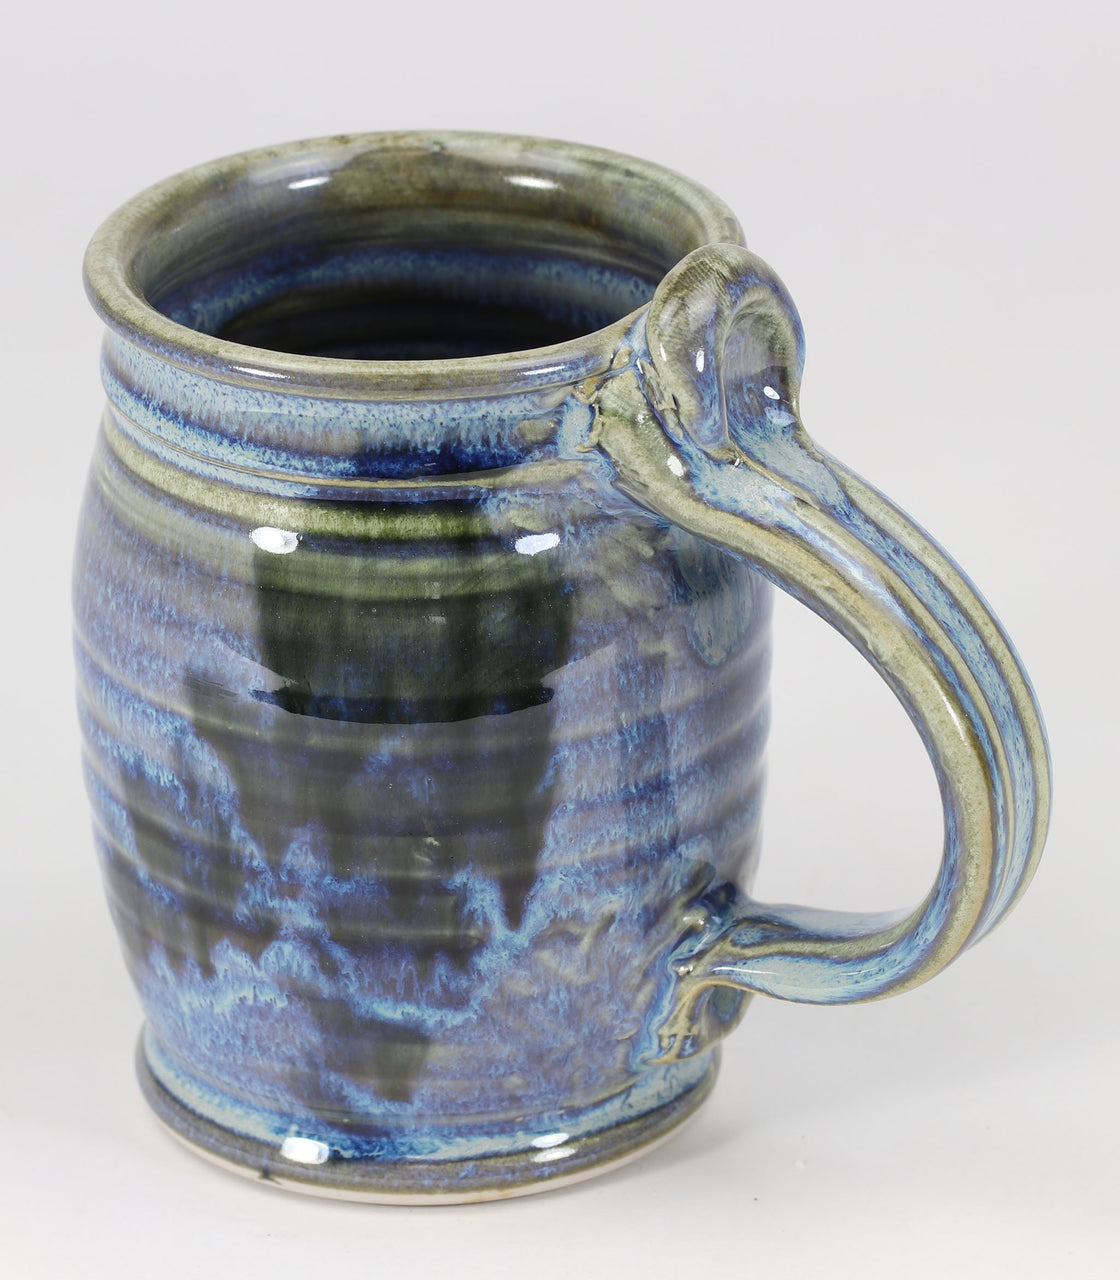 Beautiful, durable large porcelain mug in a subtle leaf-printed botanical pattern and striking glaze colors. Ideal size for a cold beer or a cozy morning cup of coffee. Mugs are chip-resistant and dishwasher-safe. Each piece is unique--shape, size and color will vary.